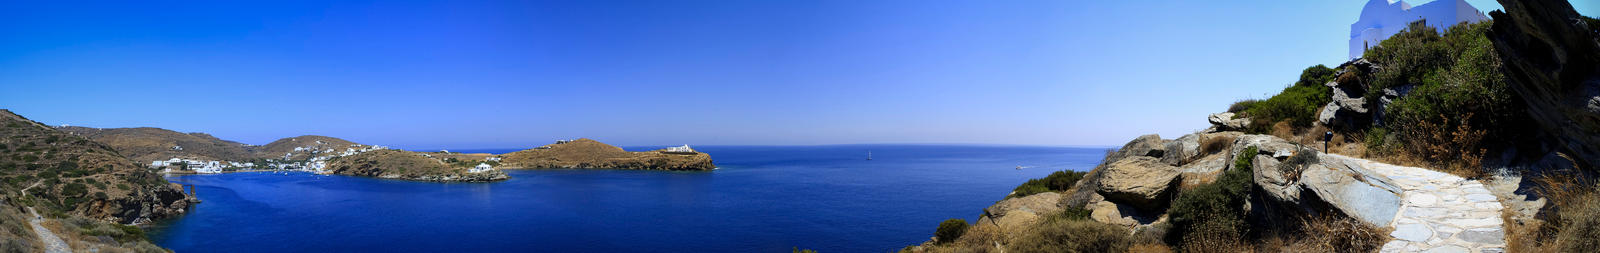 Pano Sifnos by makhor